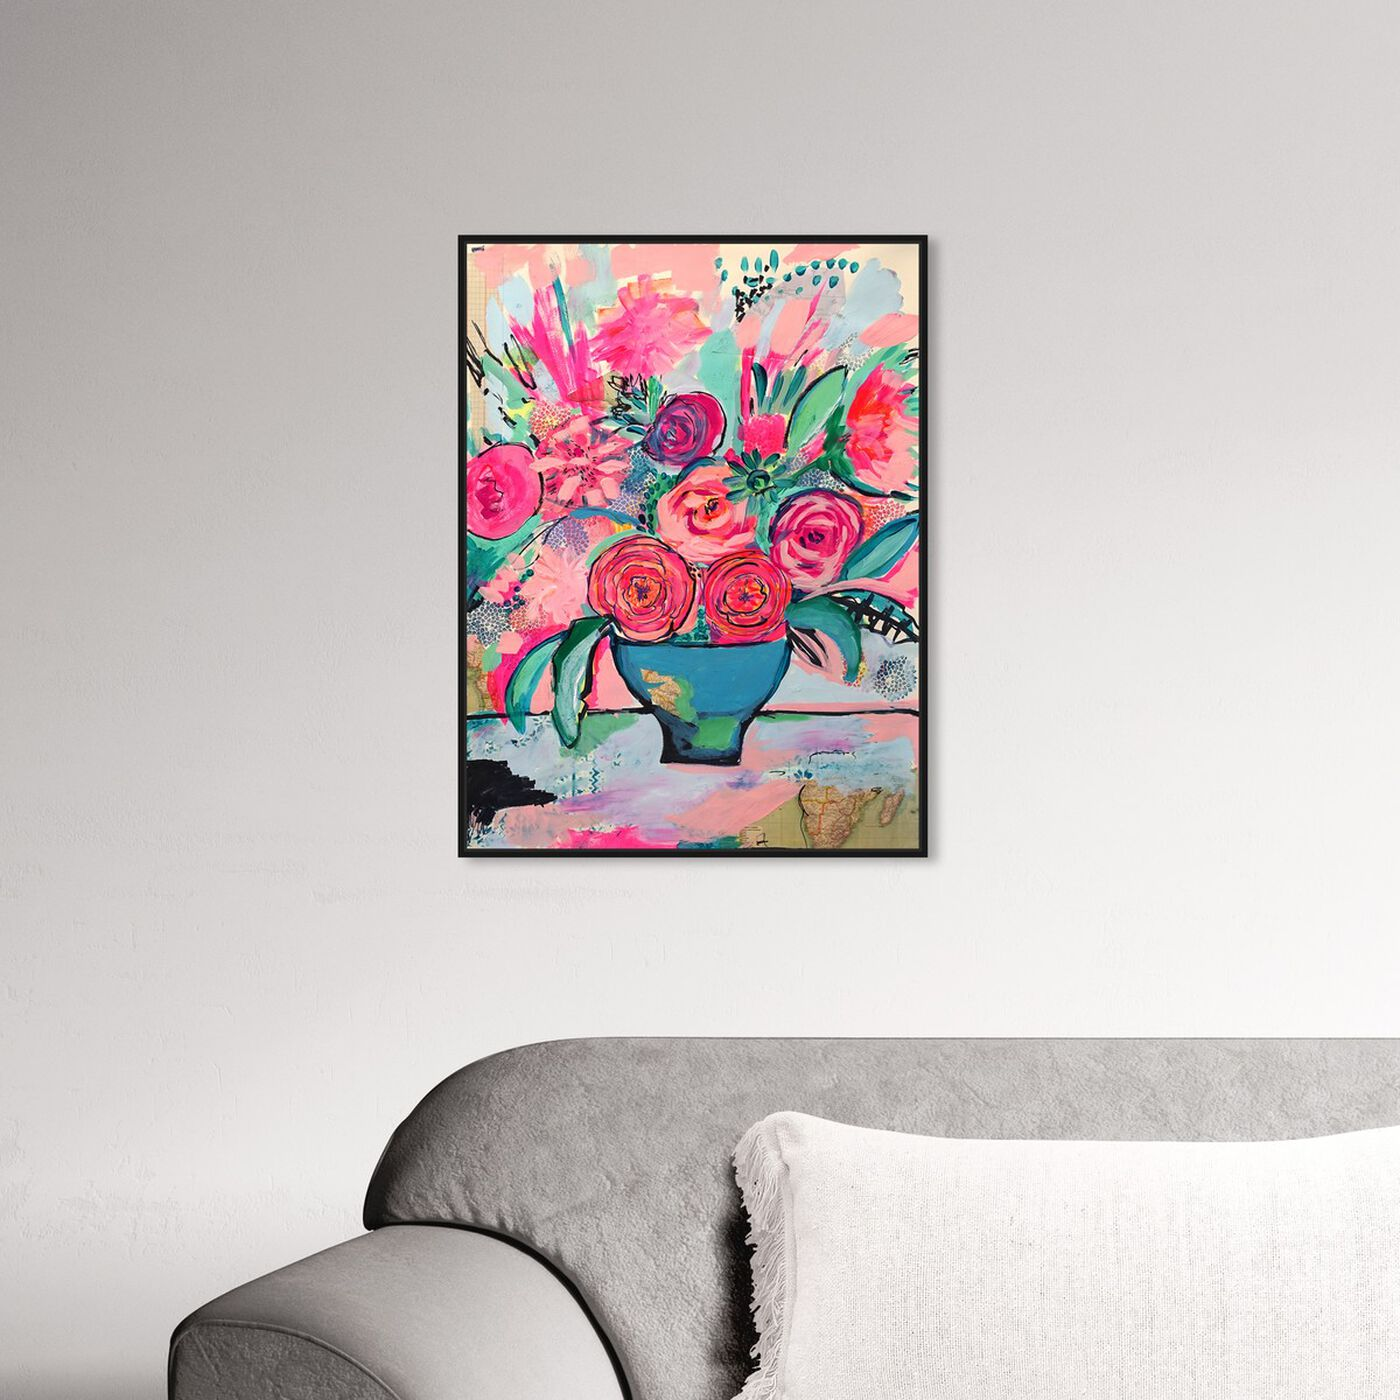 Hanging view of Viva la Vida featuring floral and botanical and florals art.